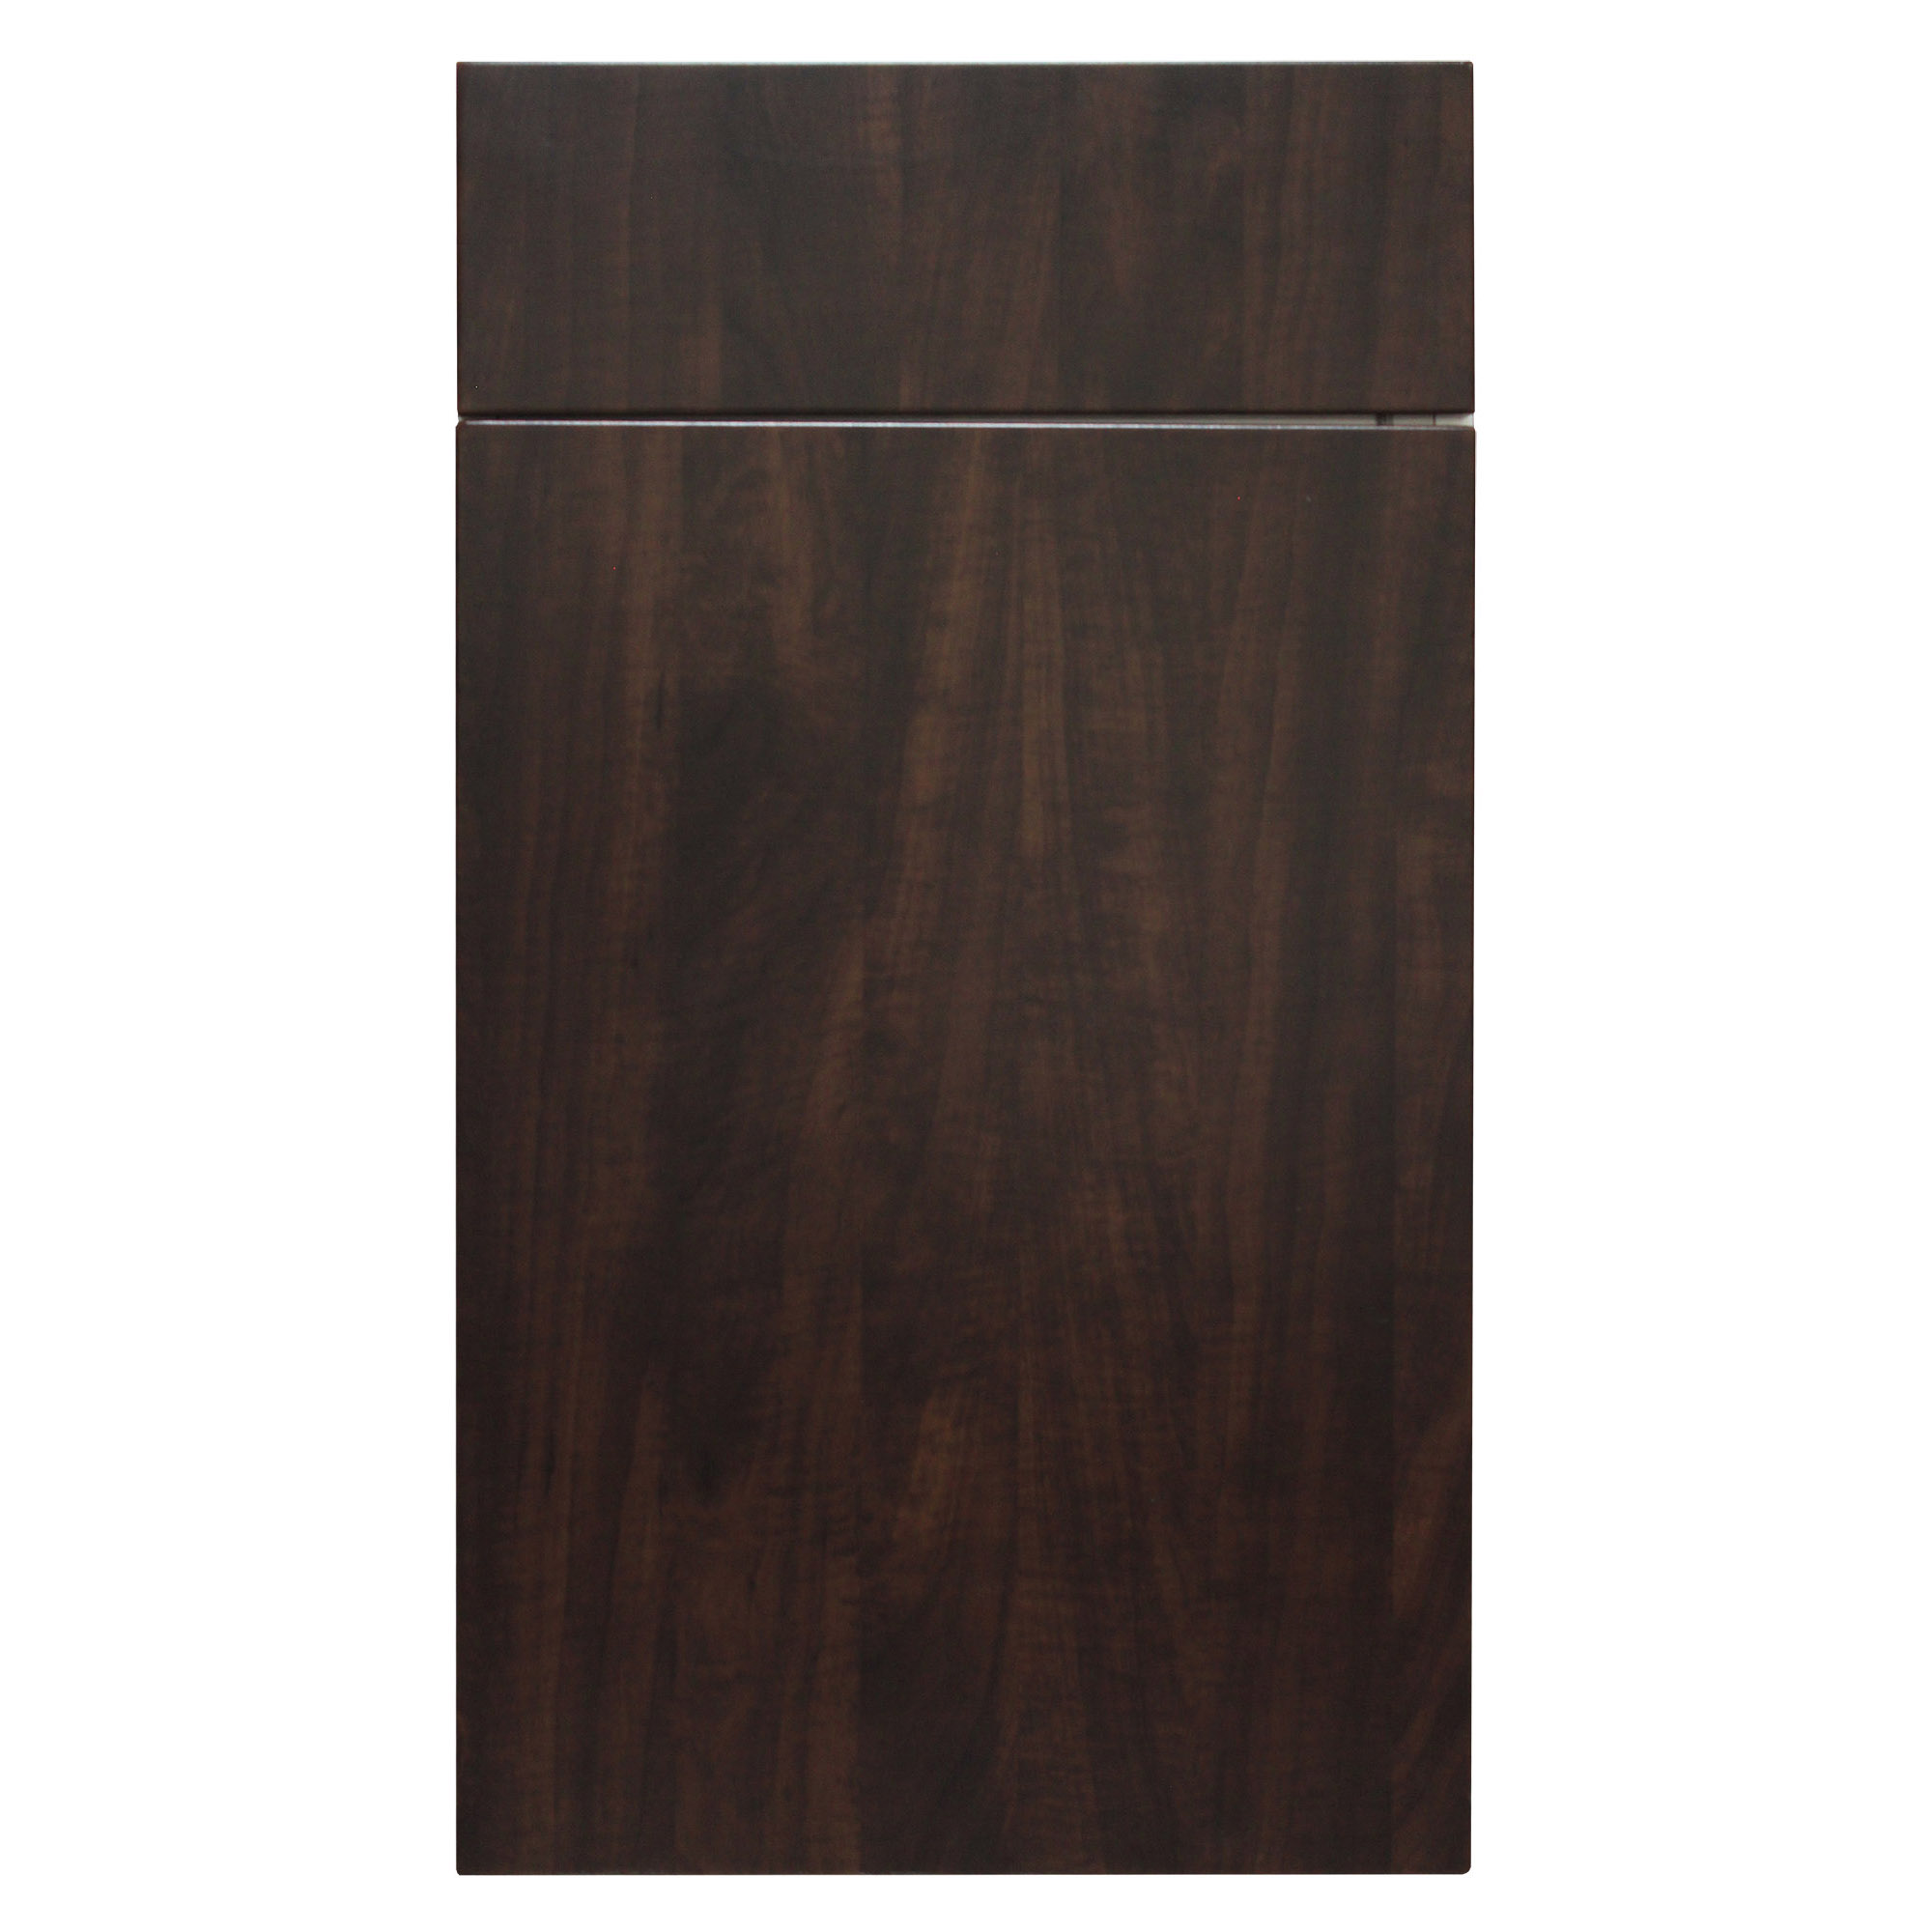 Chocolate pear sg1020 kitchen cabinets south el monte for Chocolate pear kitchen cabinets